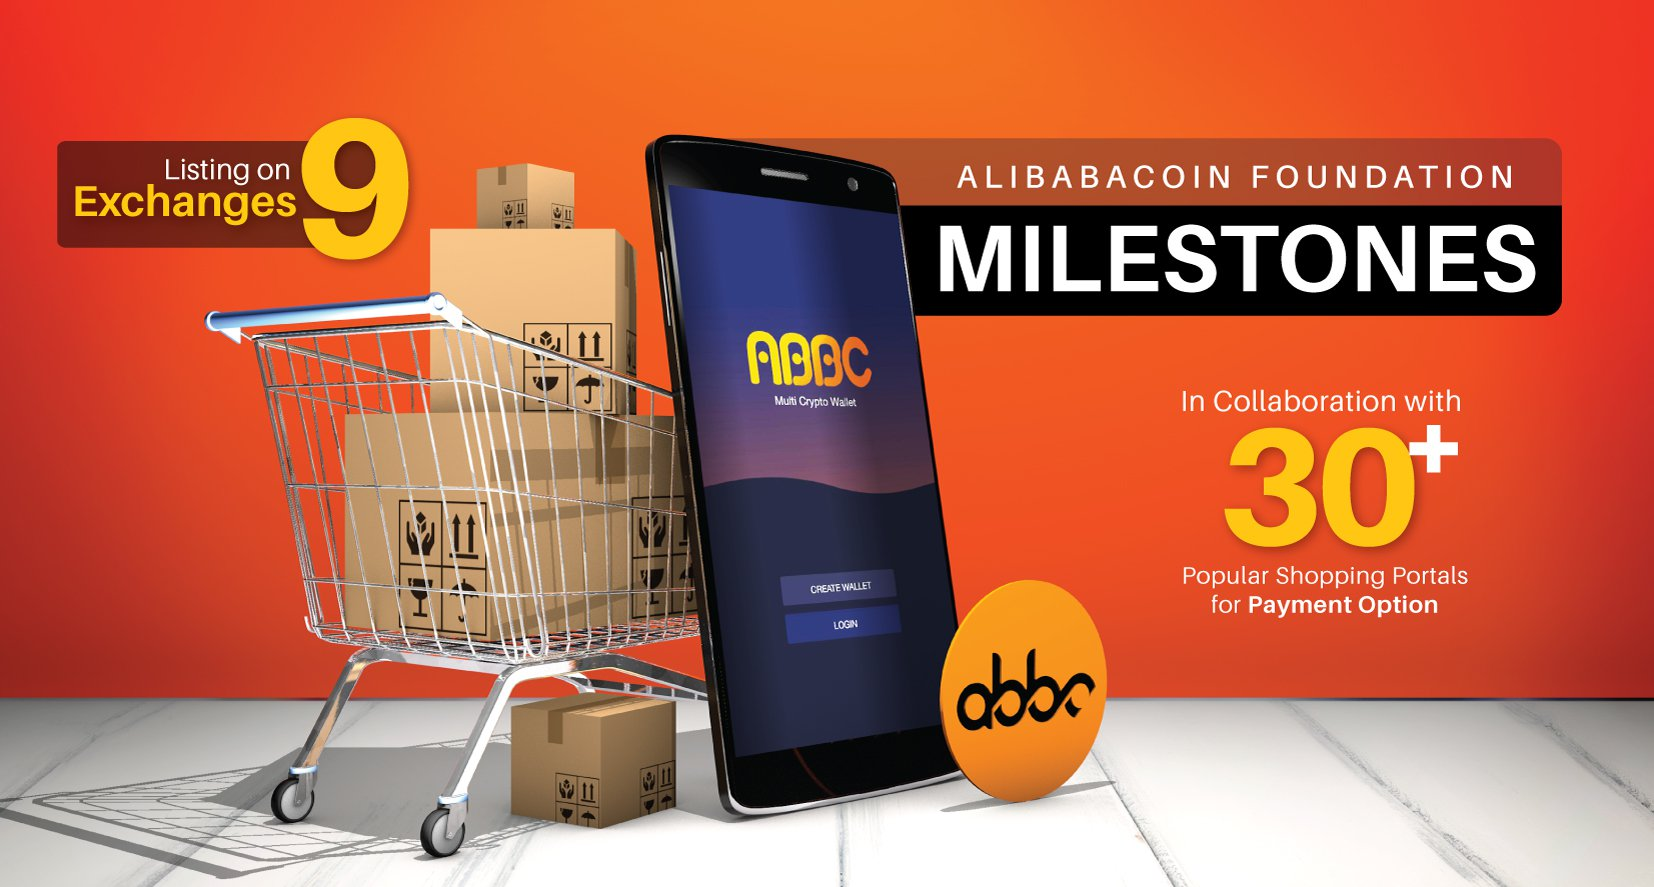 Alibabacoin Foundation Is Excited to Achieve Back to Back Milestones